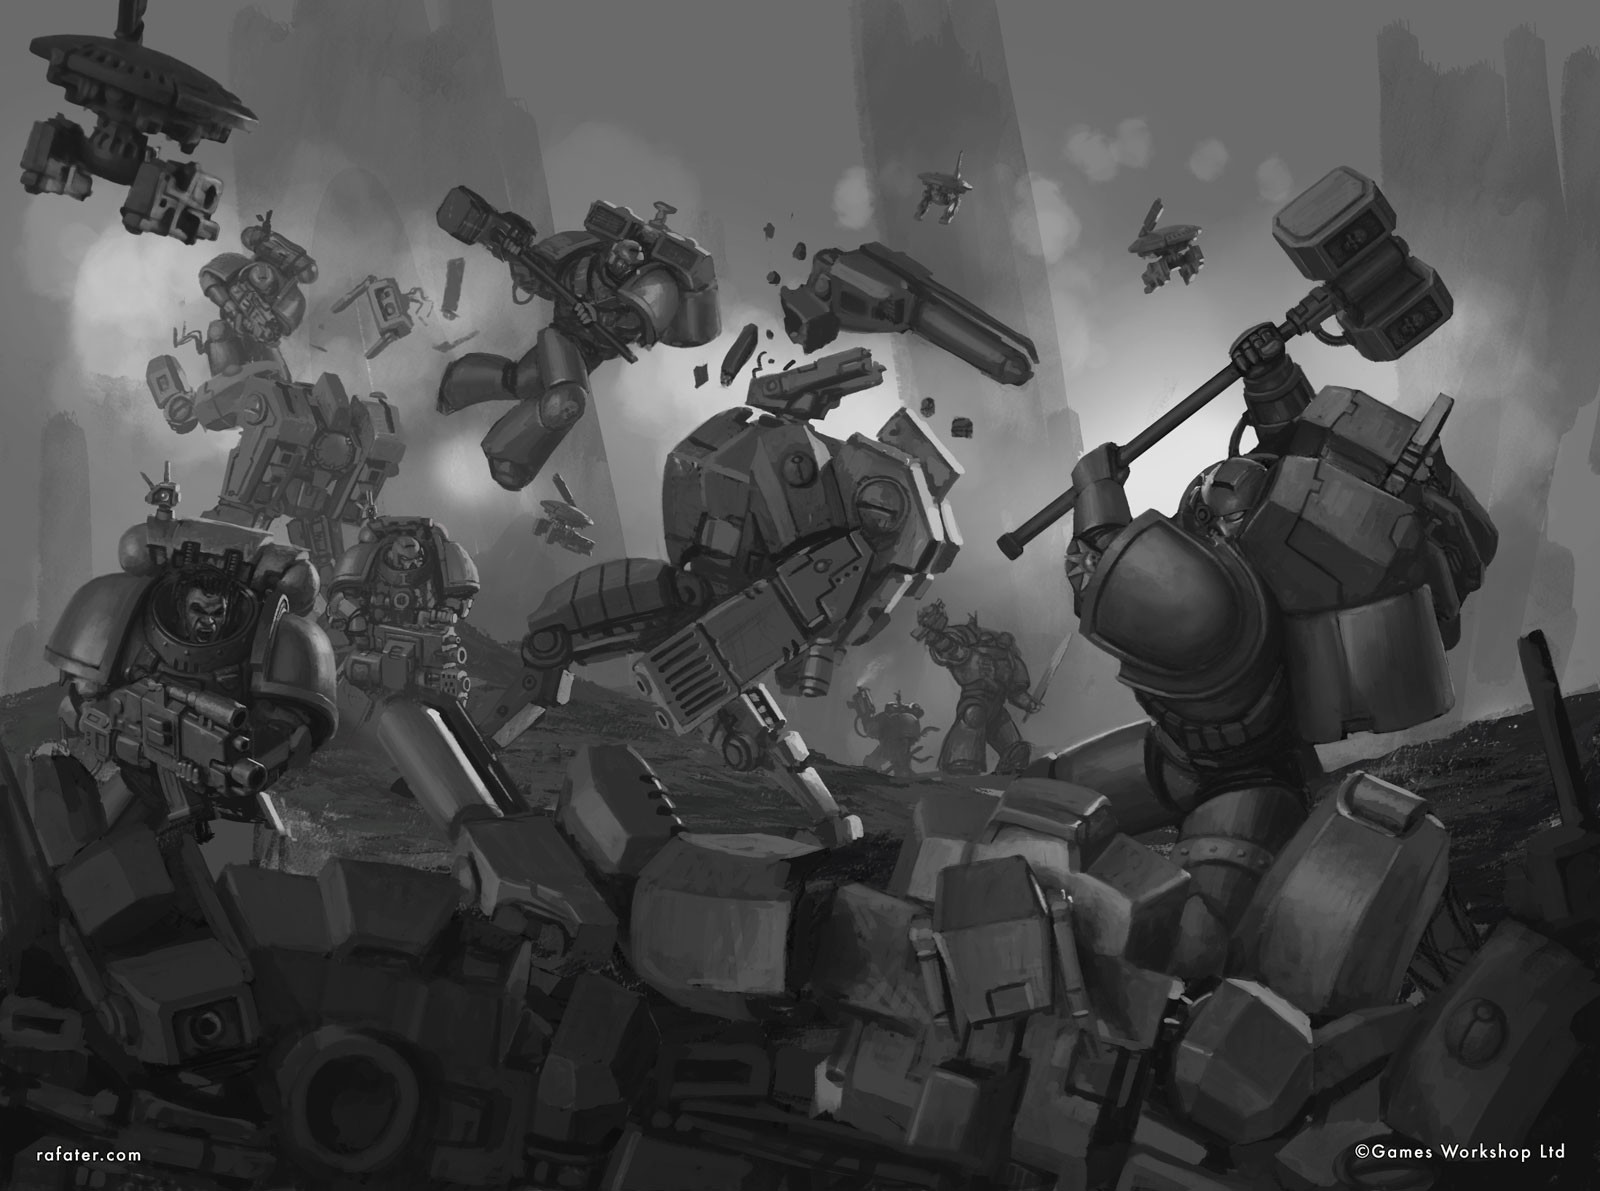 Rafael teruel deathwatch vs taubattlesuits values by rafater